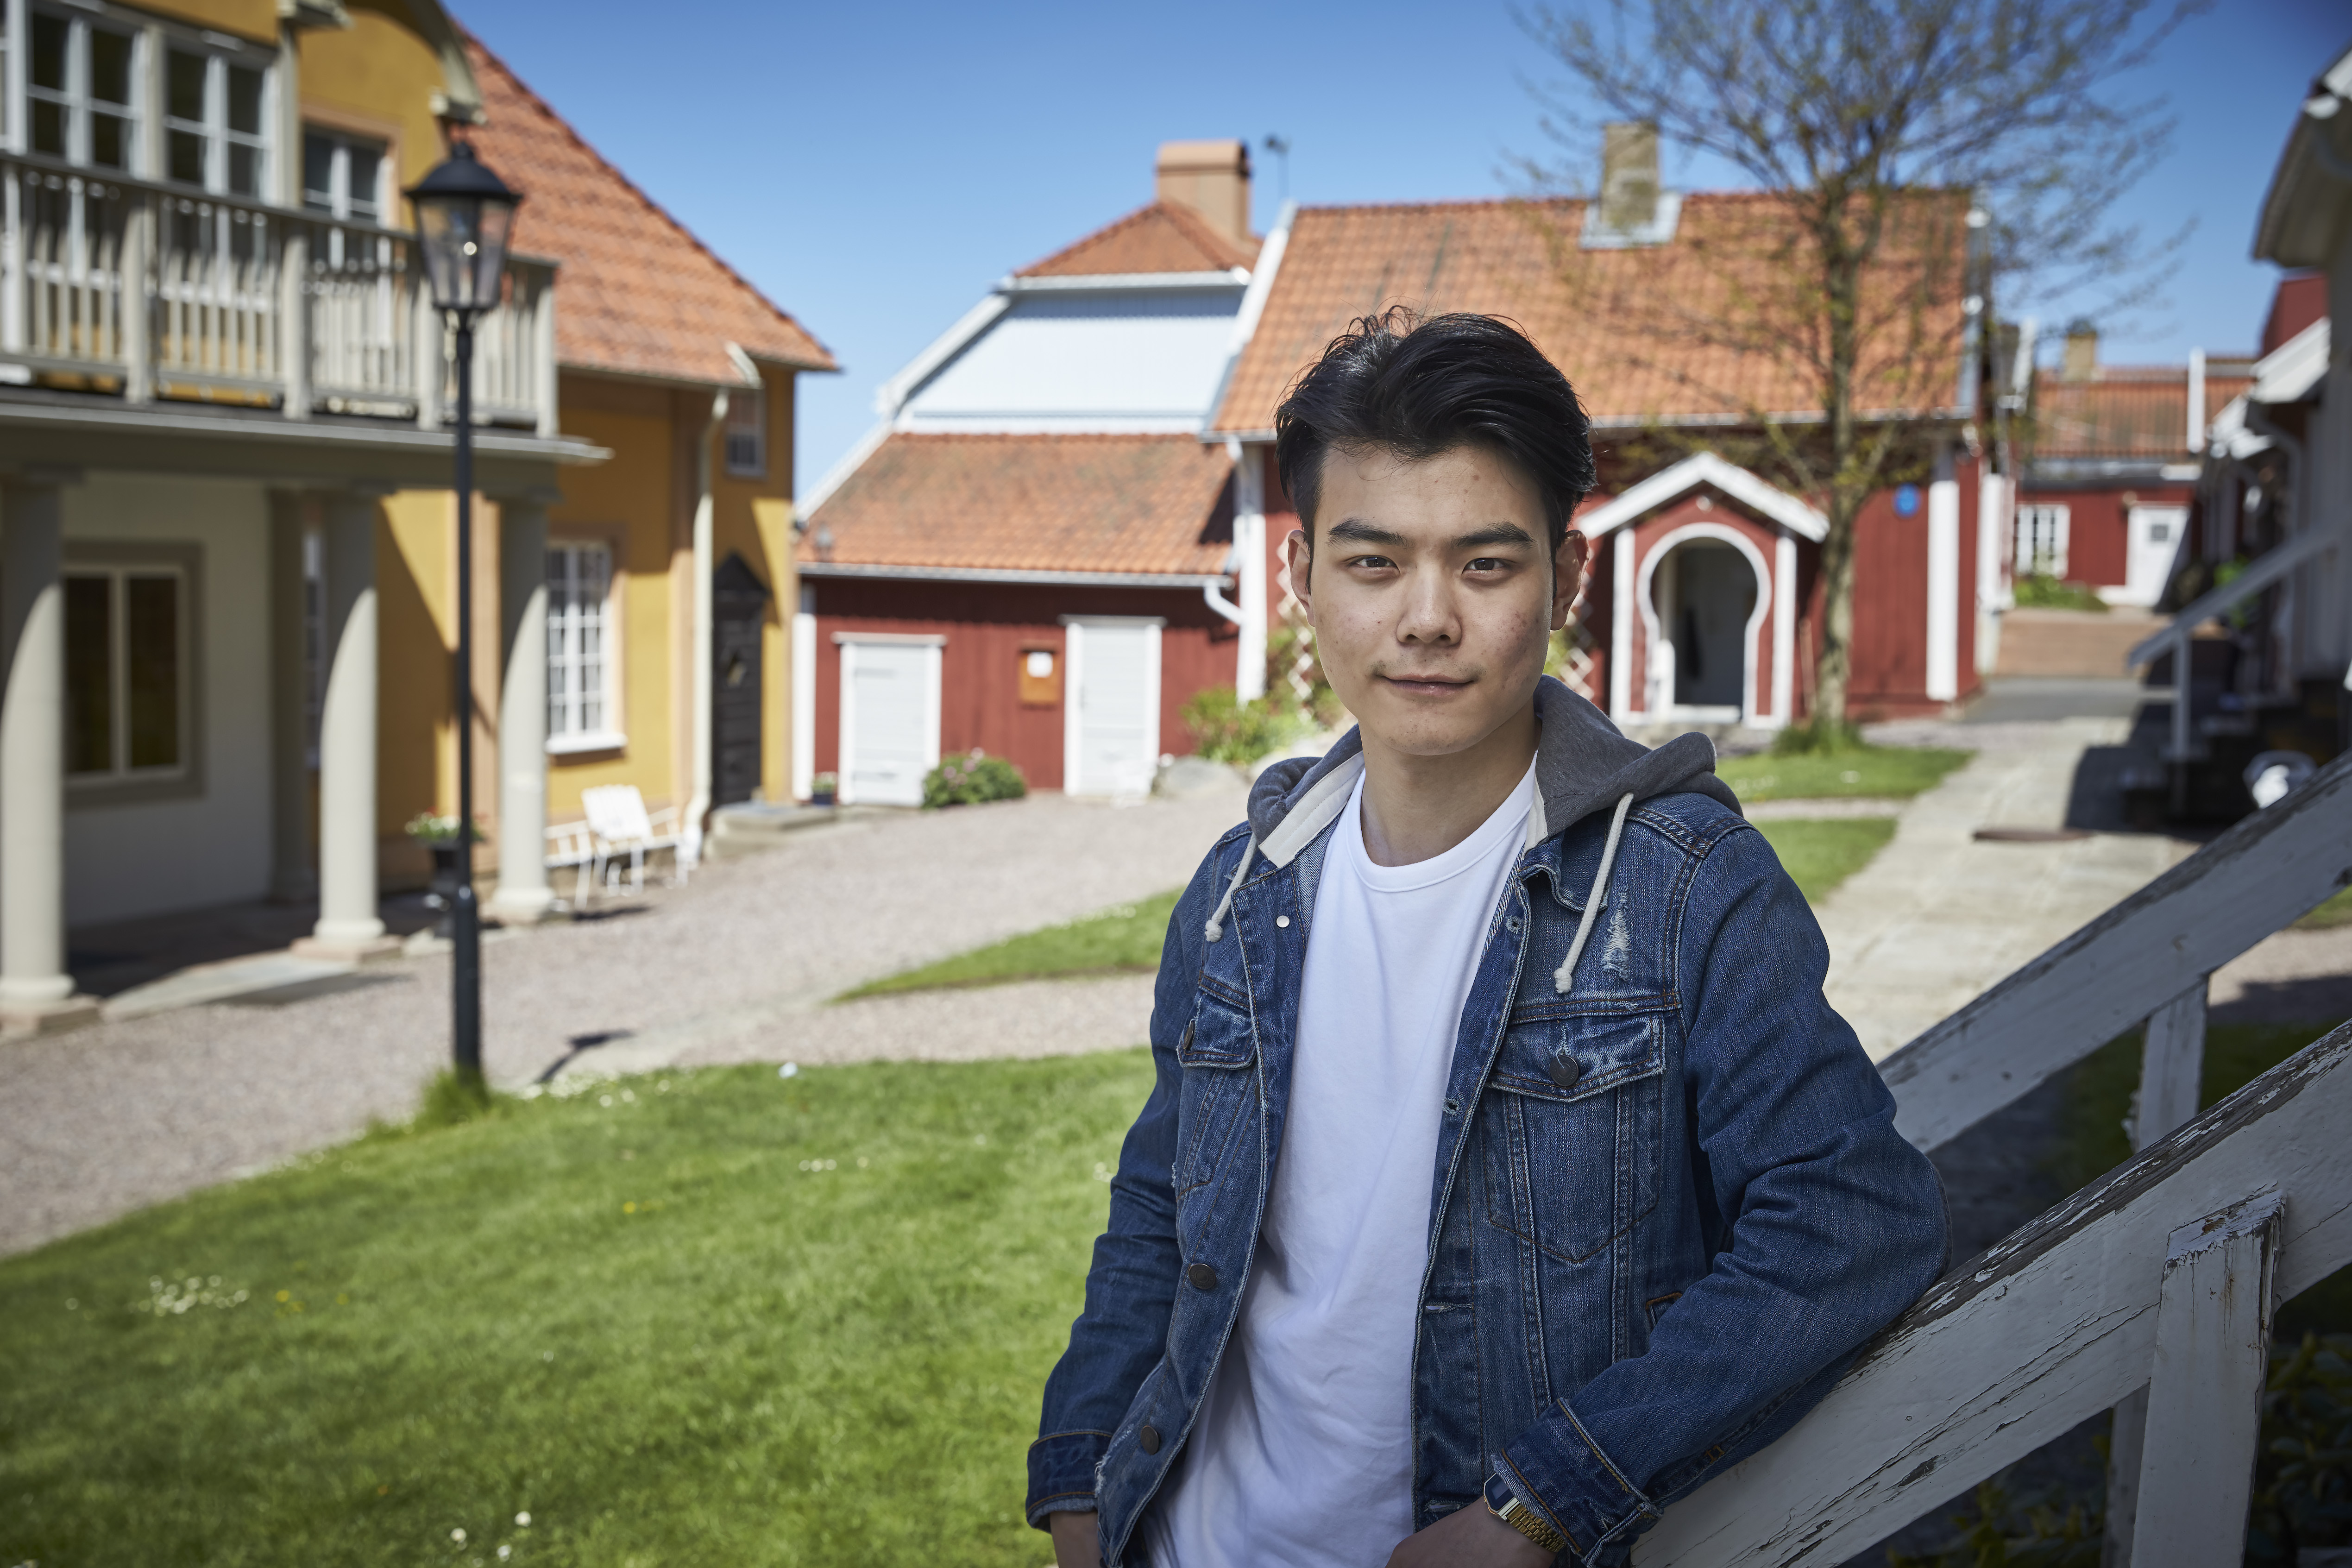 Yuan from China wants to study International Management